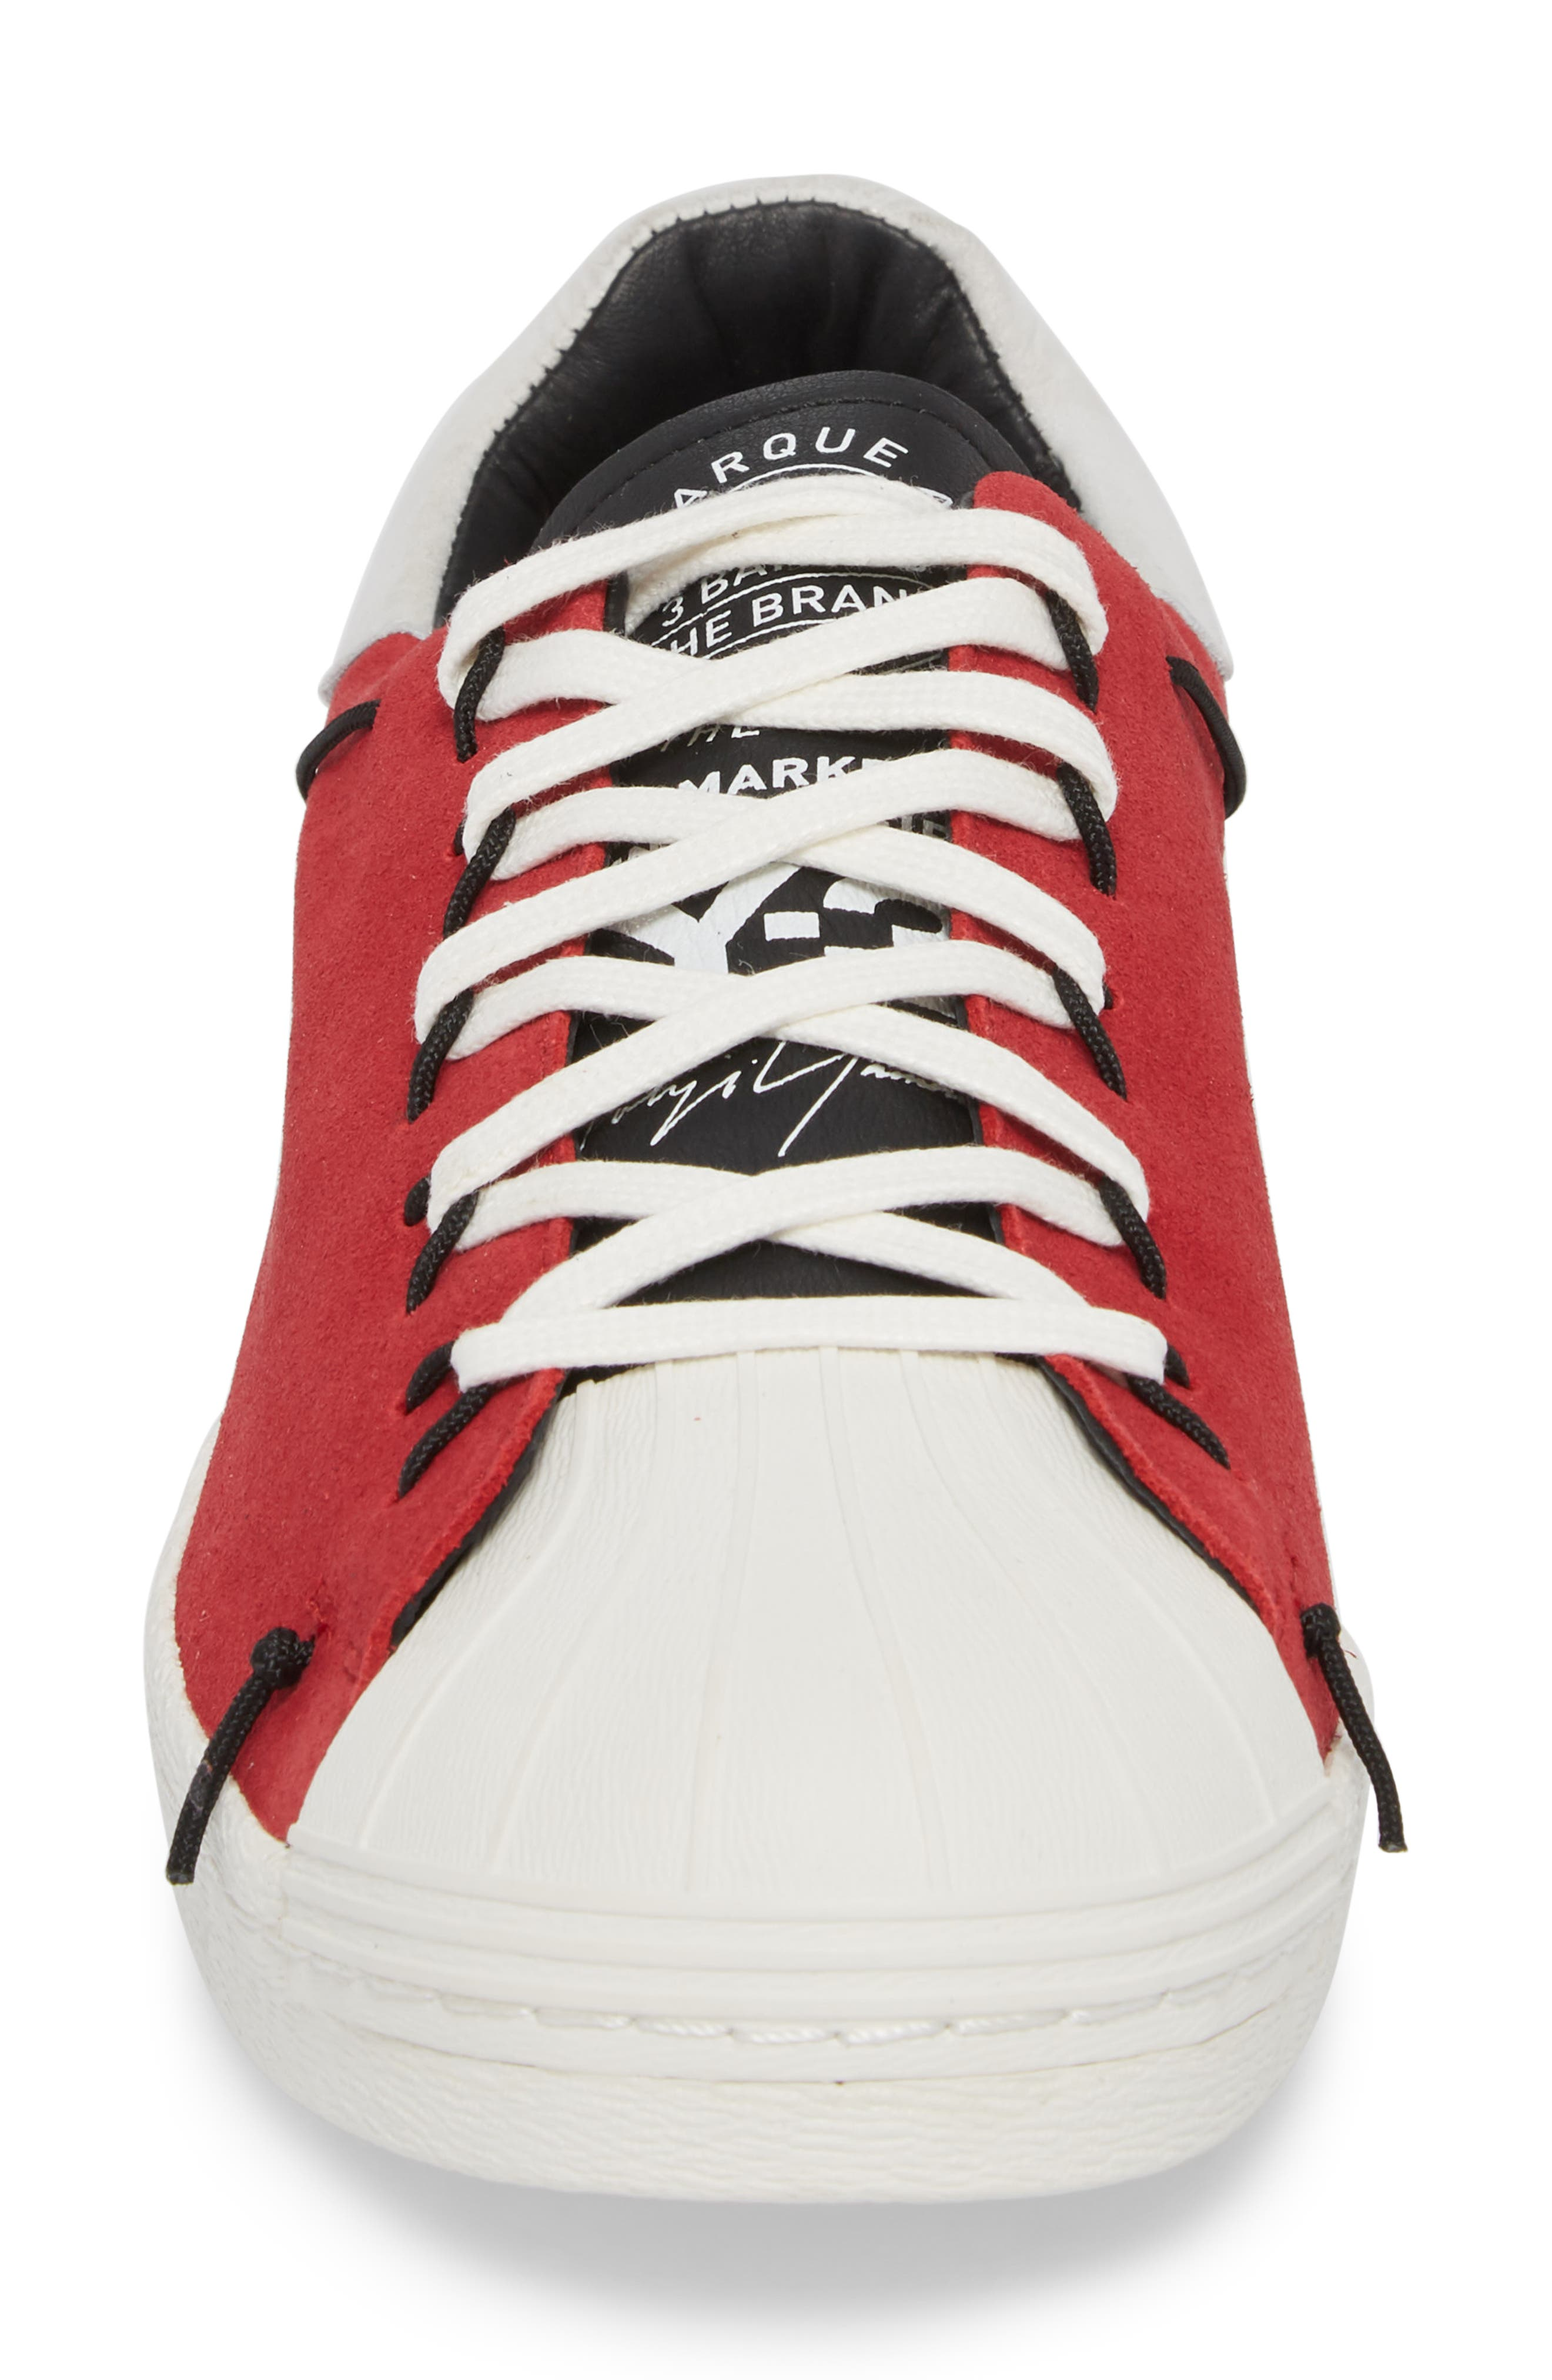 x adidas Super Knot Low Top Sneaker,                             Alternate thumbnail 4, color,                             602